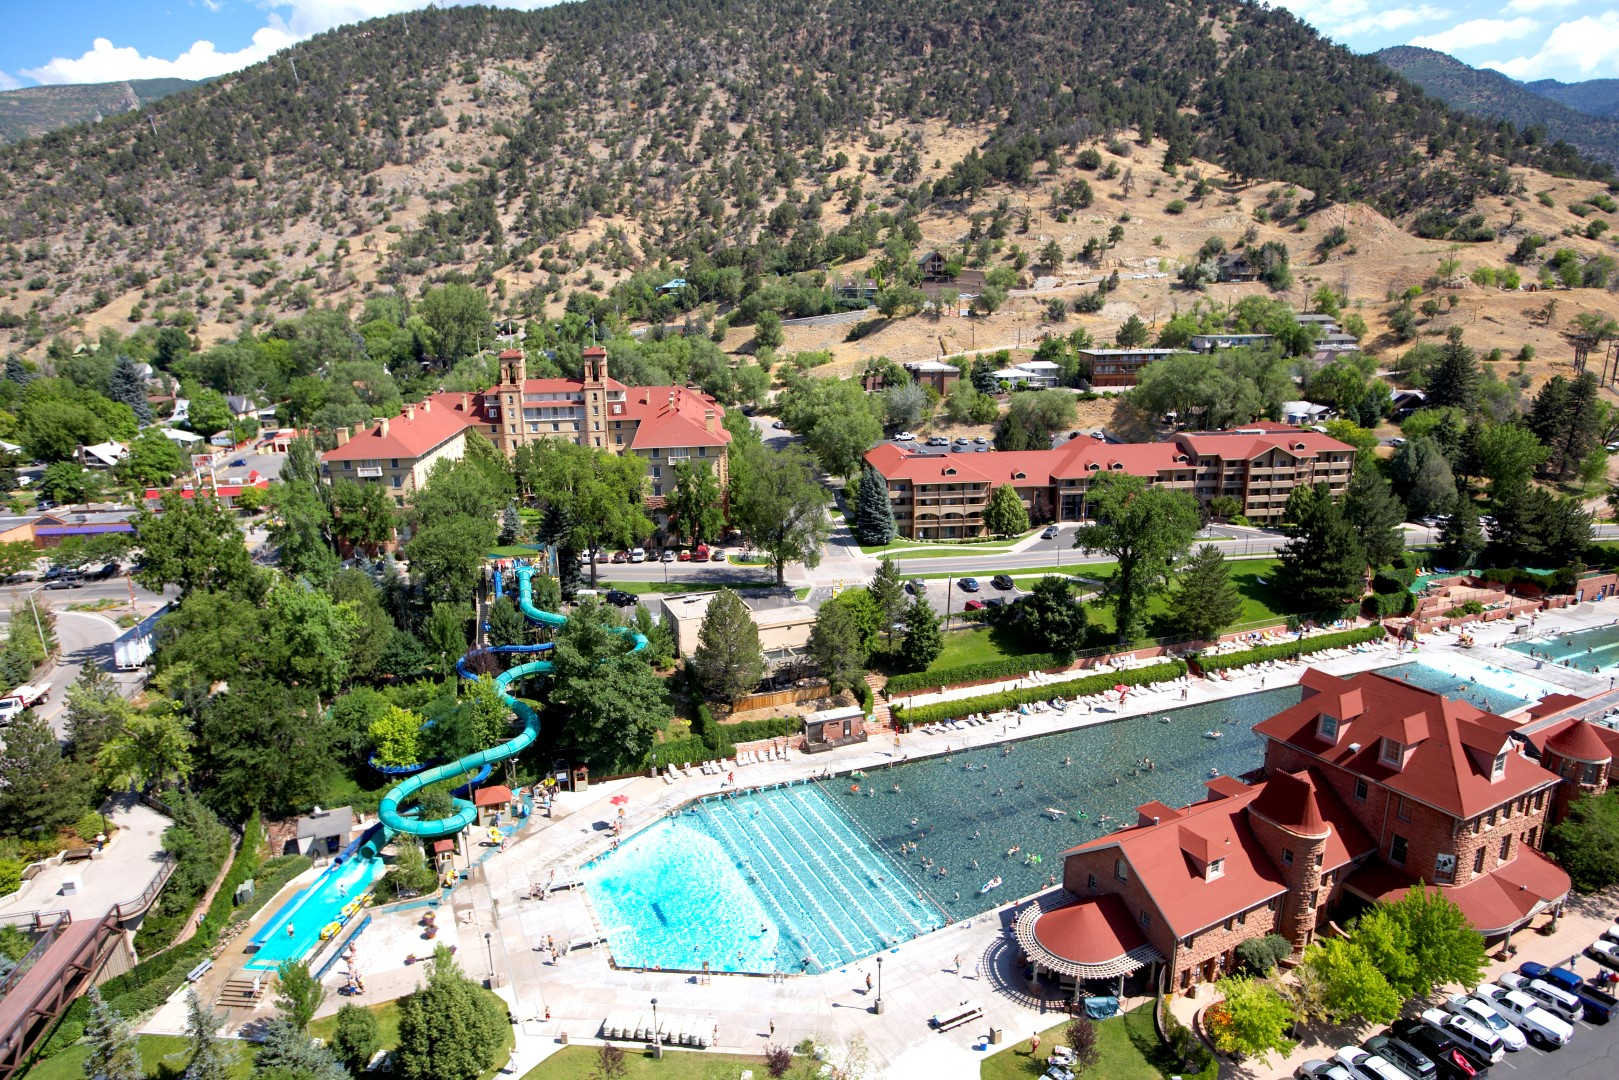 Glenwood Hot Springs To Purchase Hotel Colorado In Early